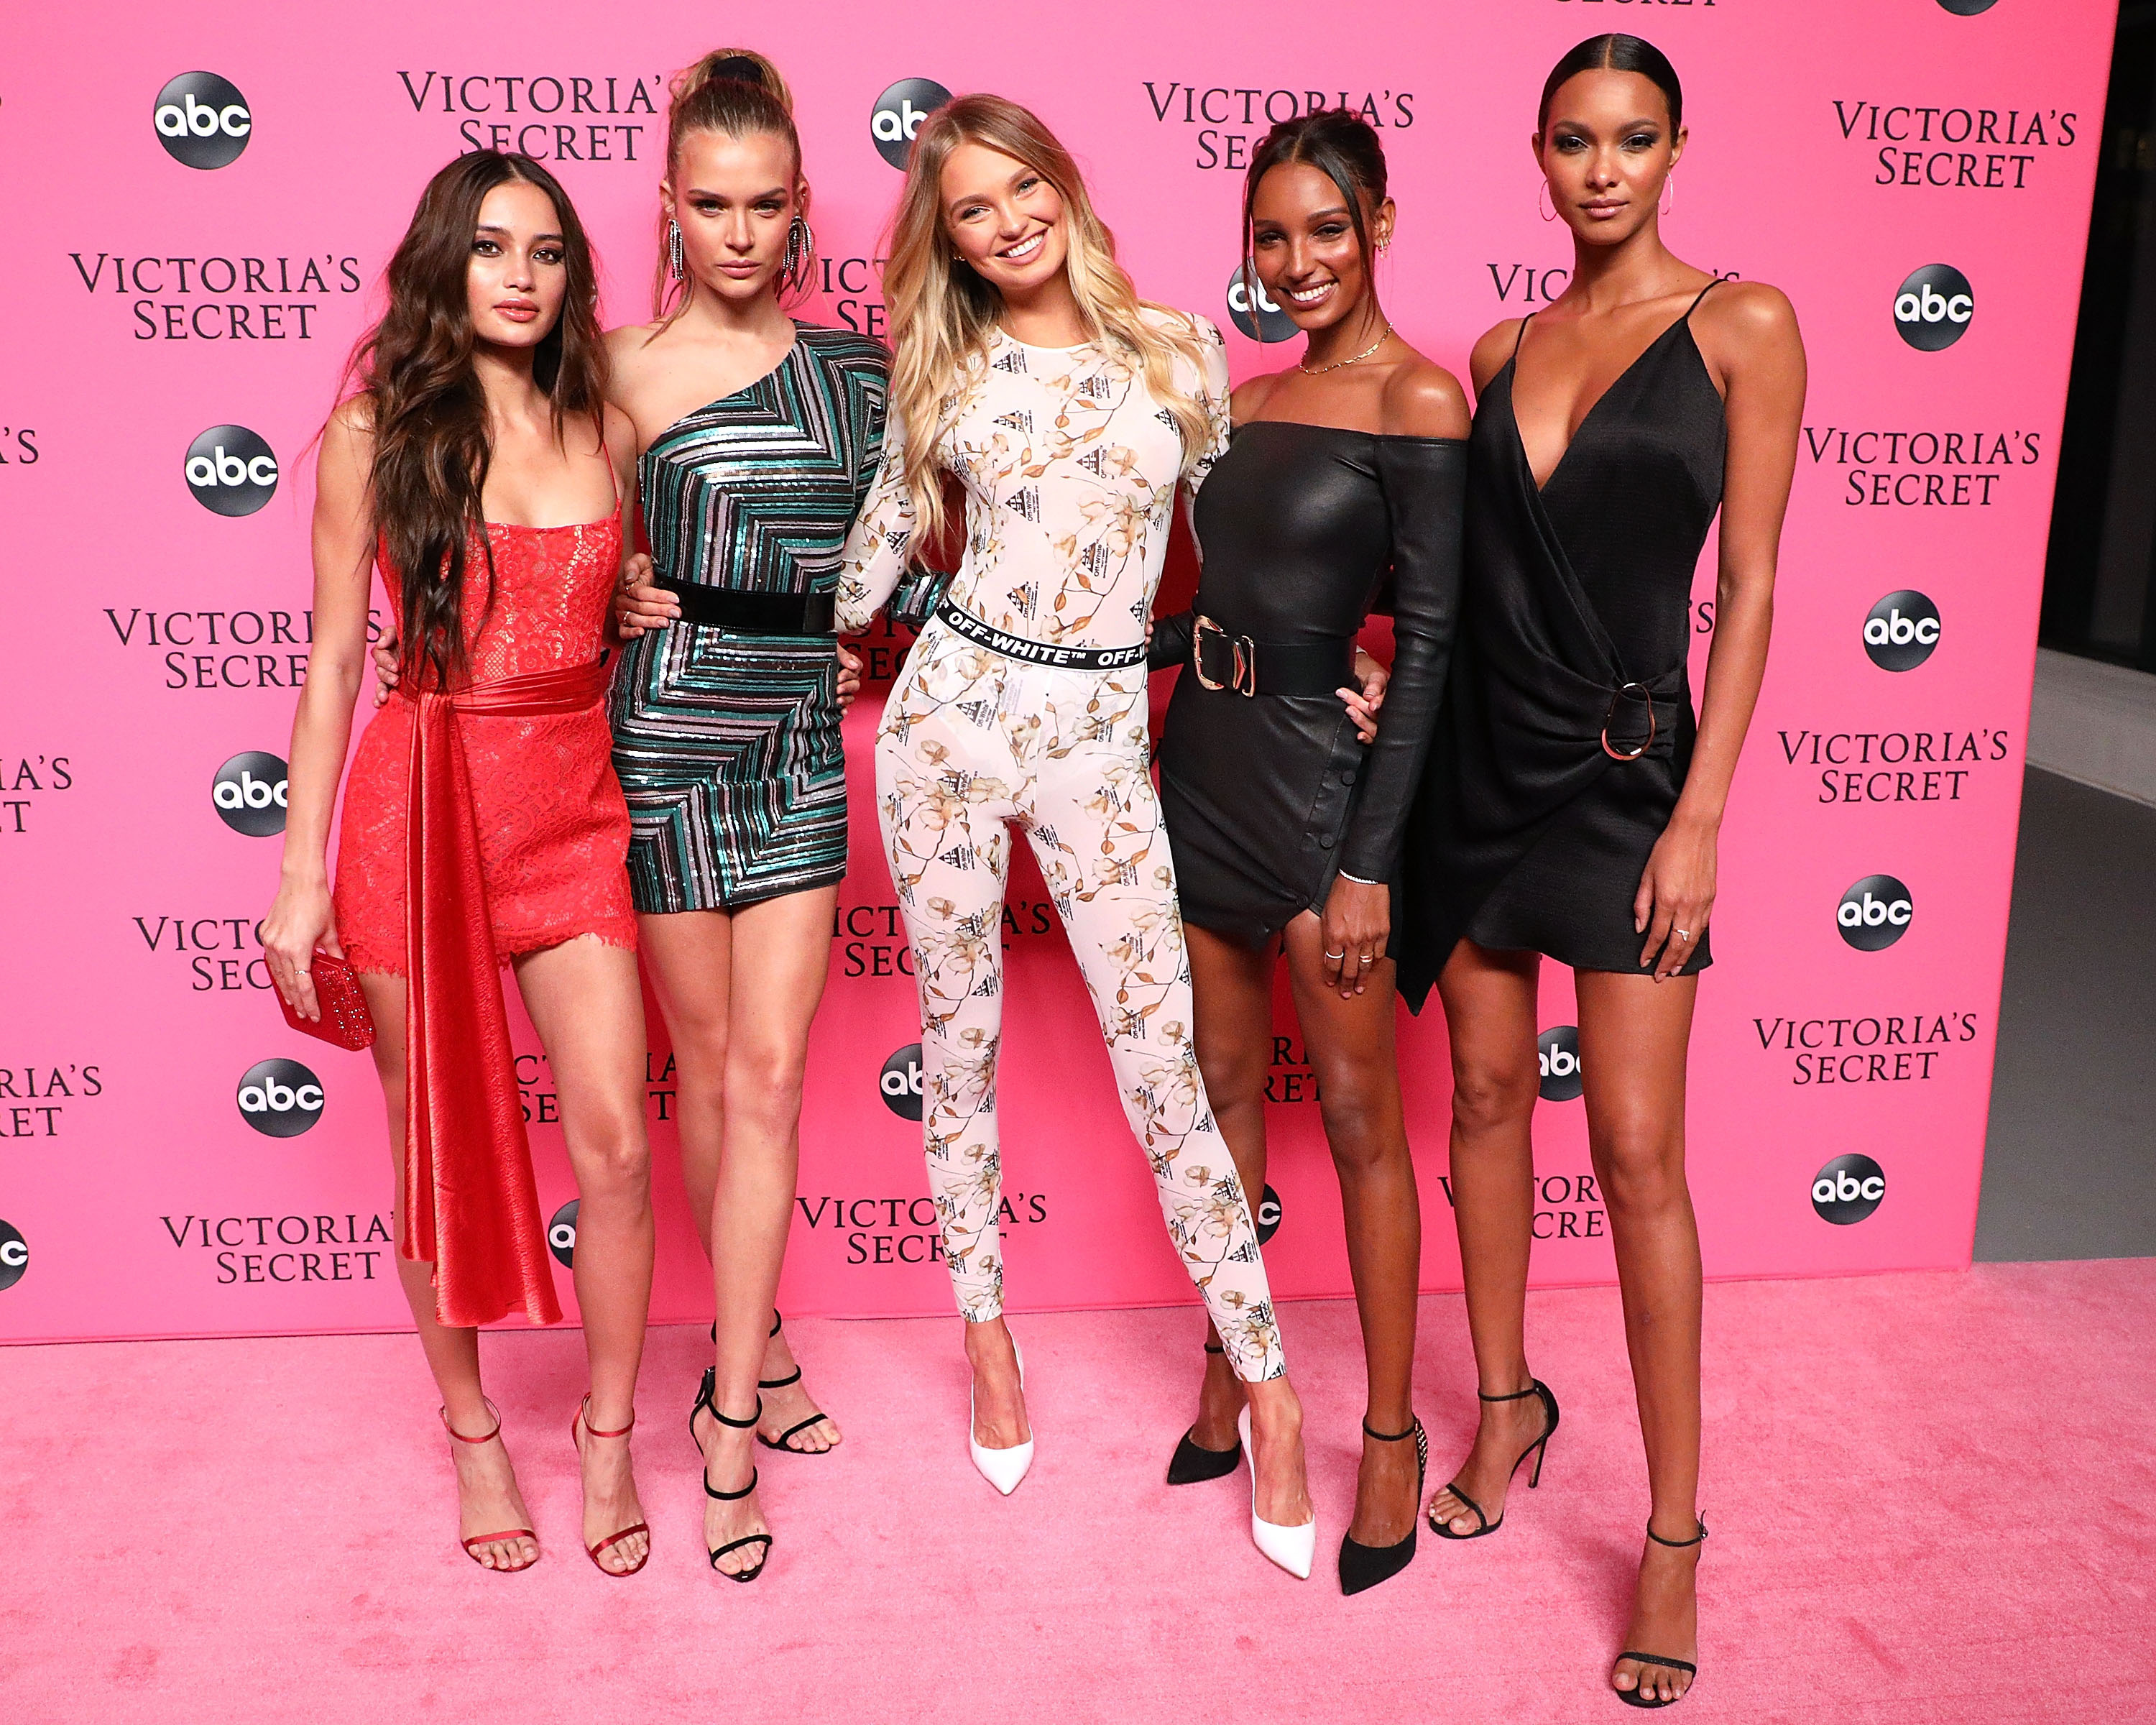 The Victoria's Secret Fashion Show Isn't Over